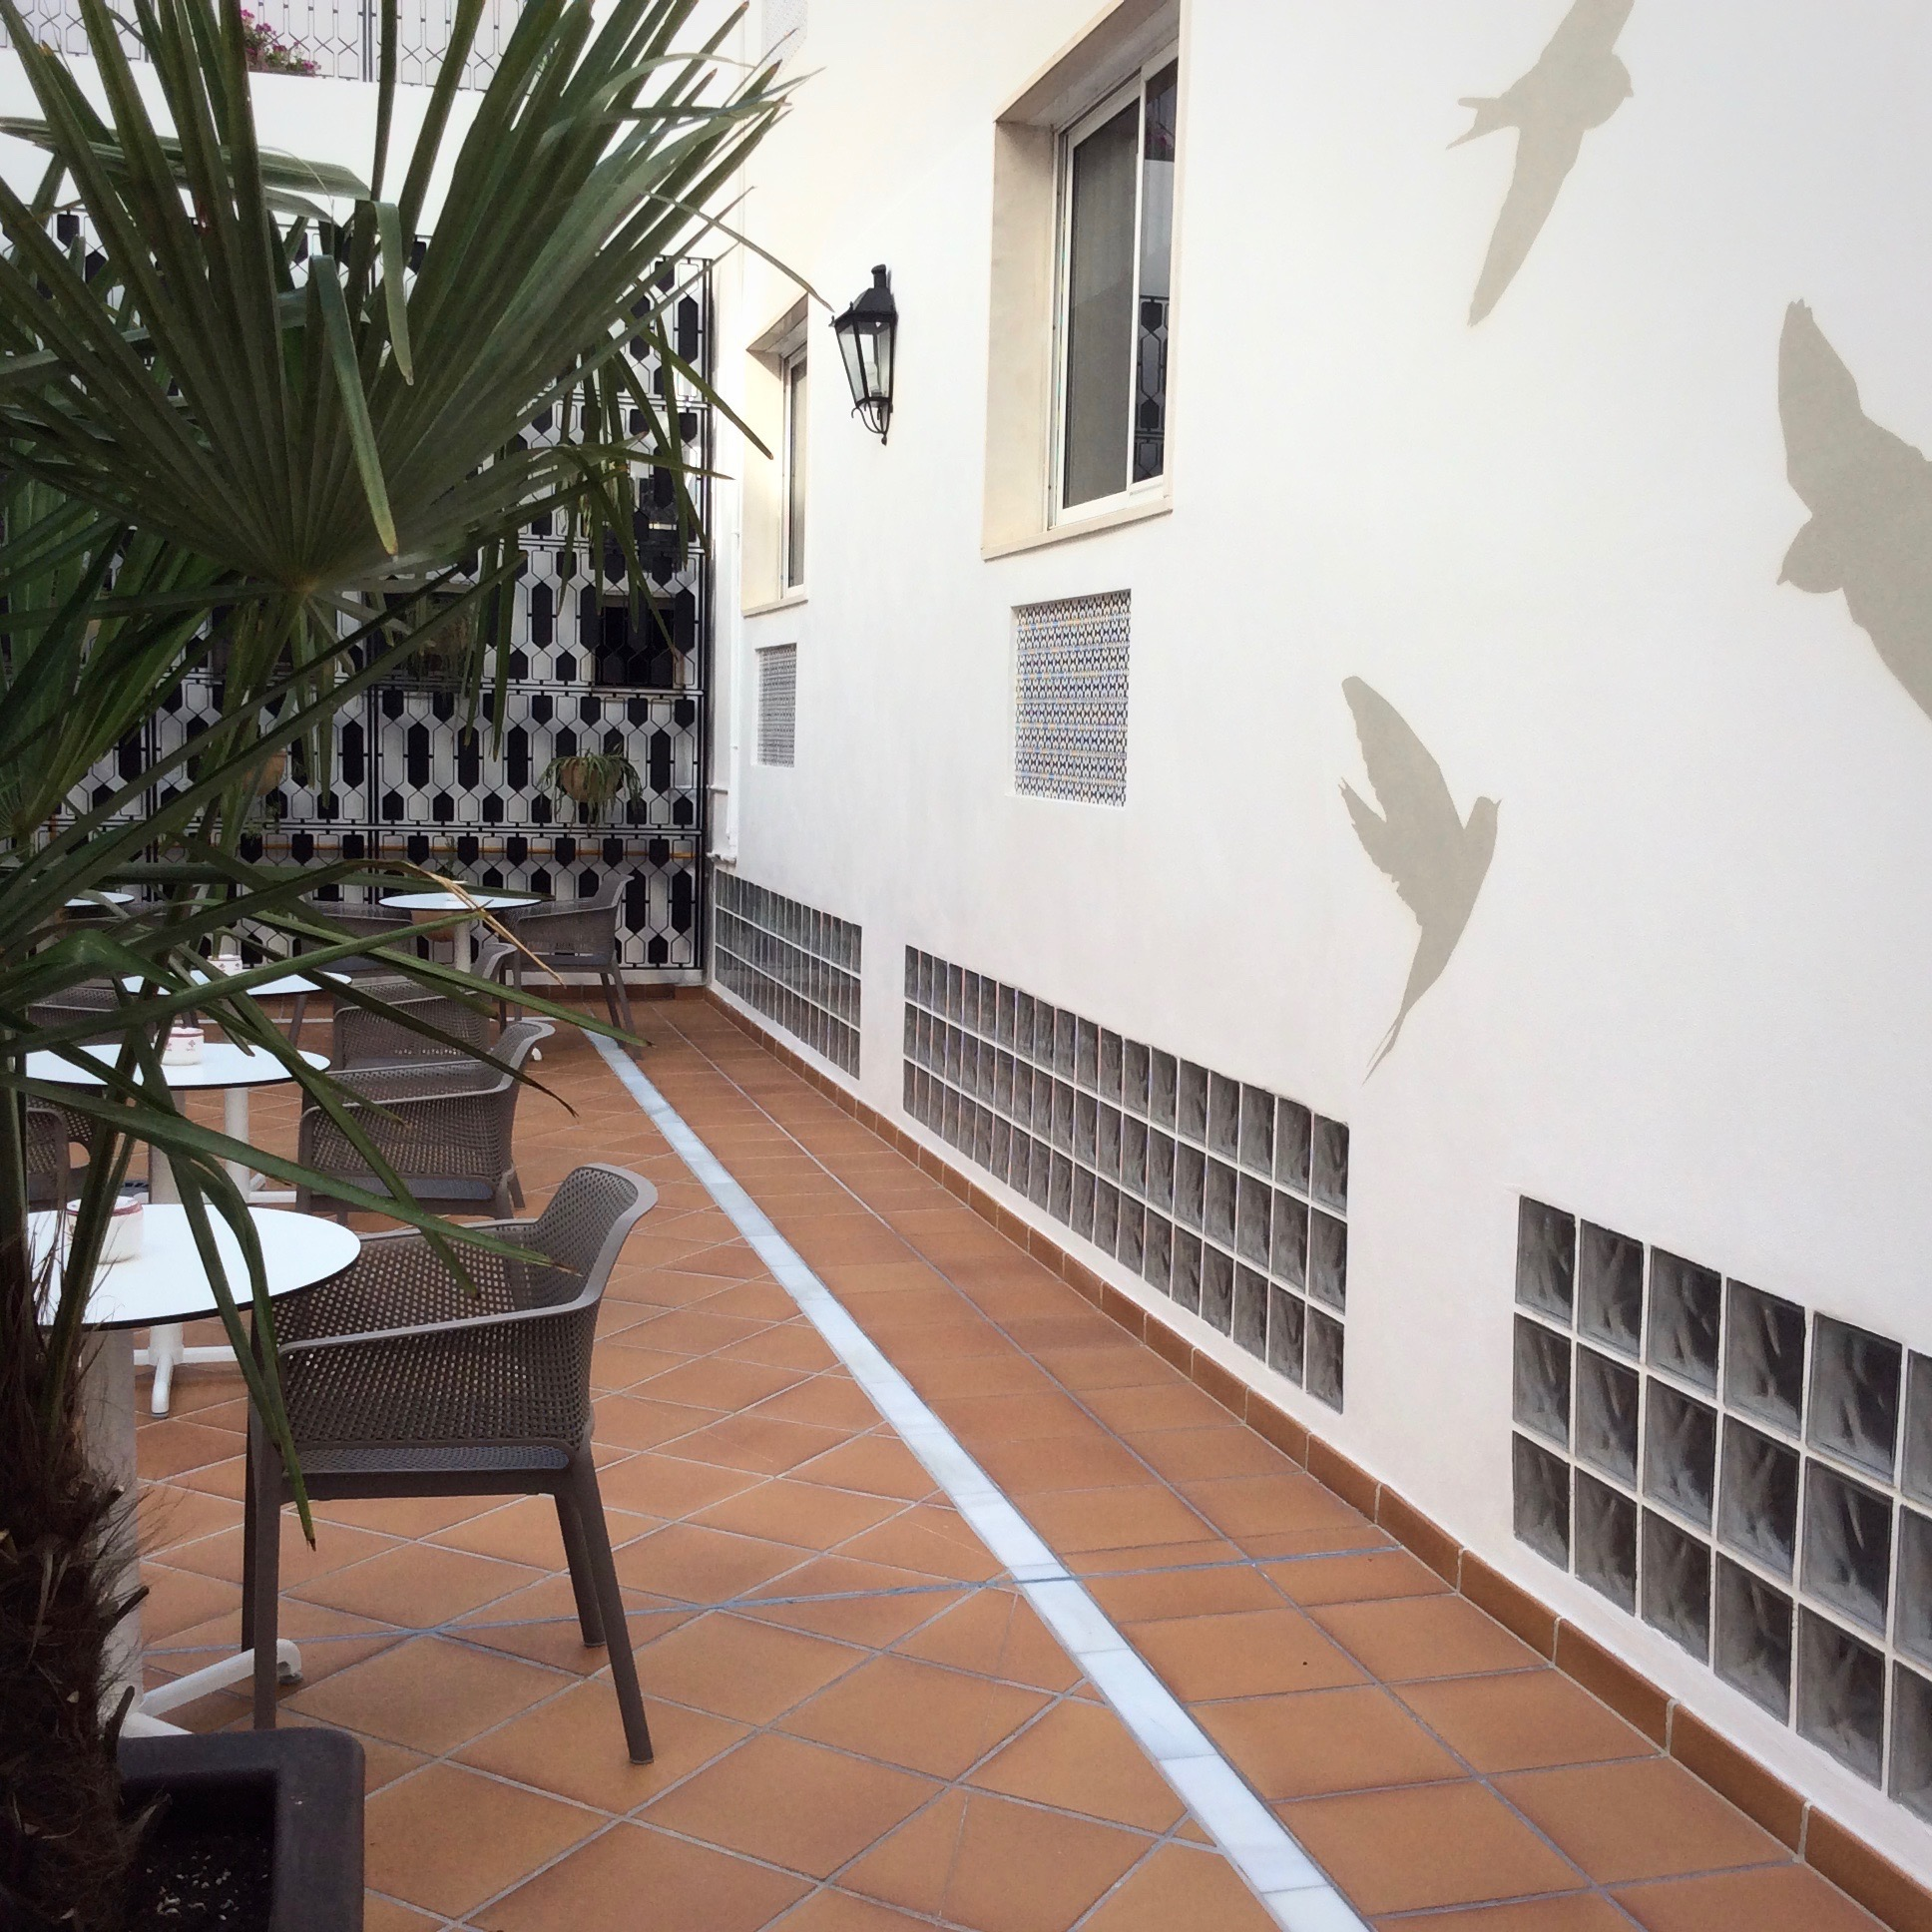 patio-hotel-monte-triana-vista-pajaros